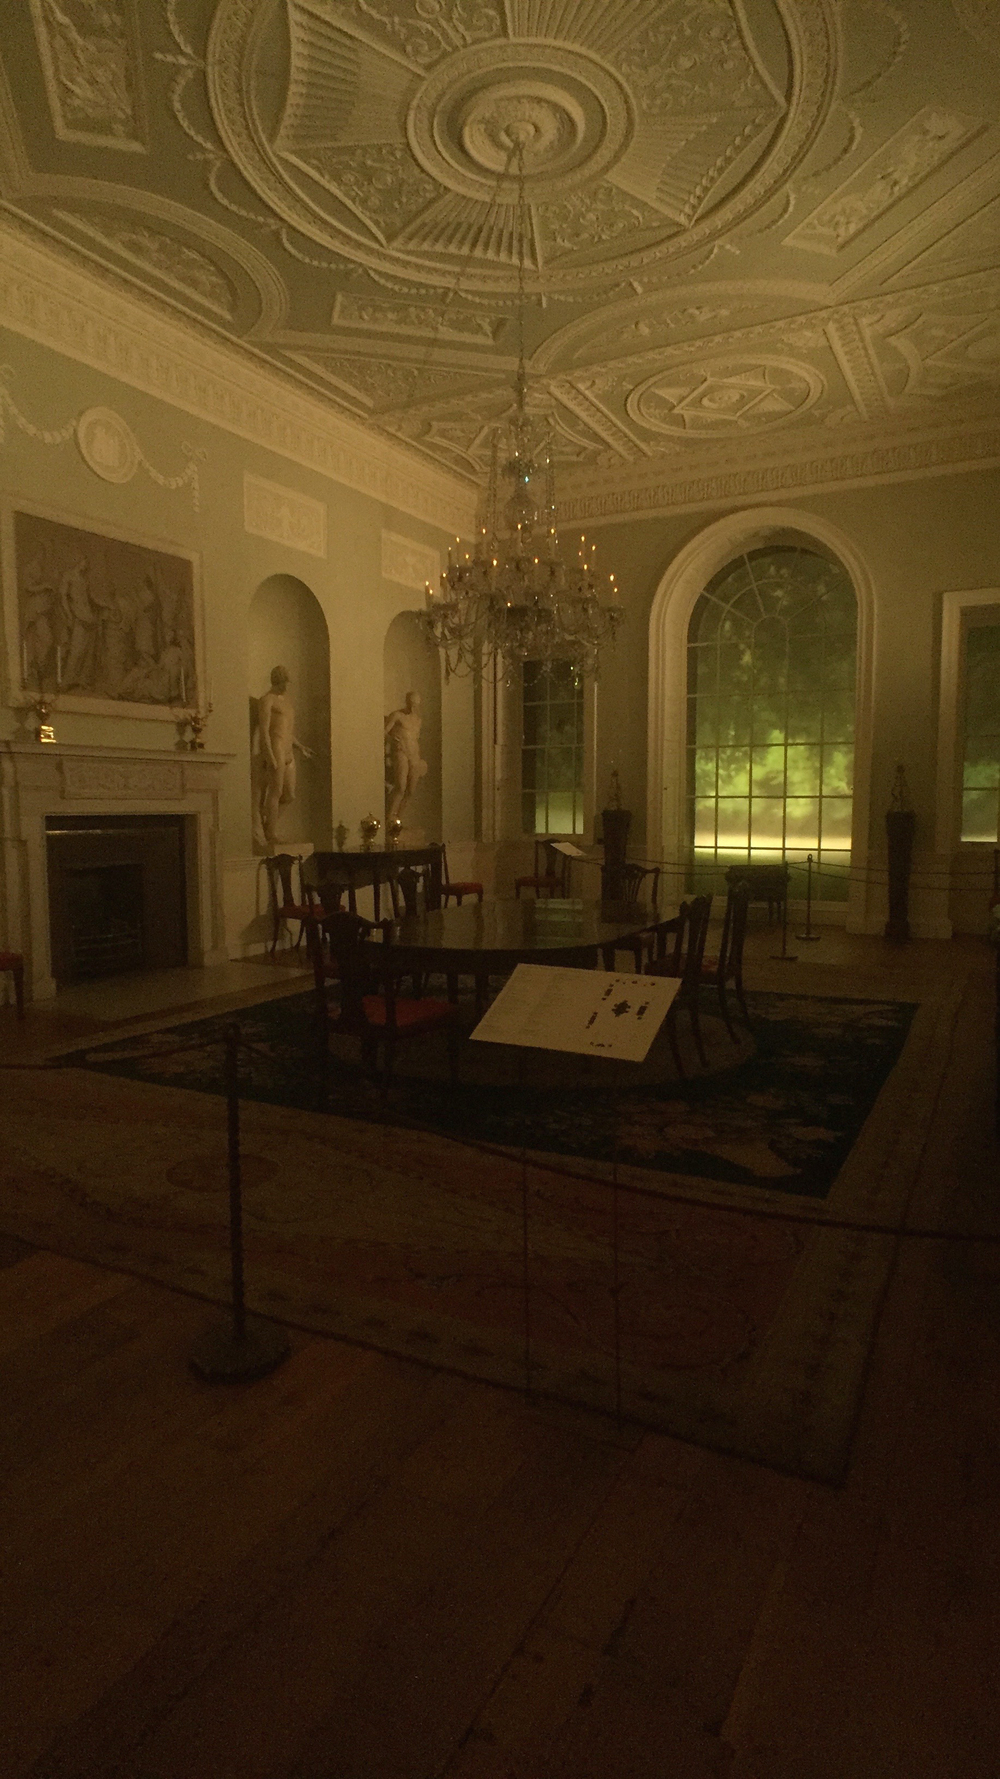 A late 18th century dining room on the upper floors of the European Sculpture and Decorative Arts Wing